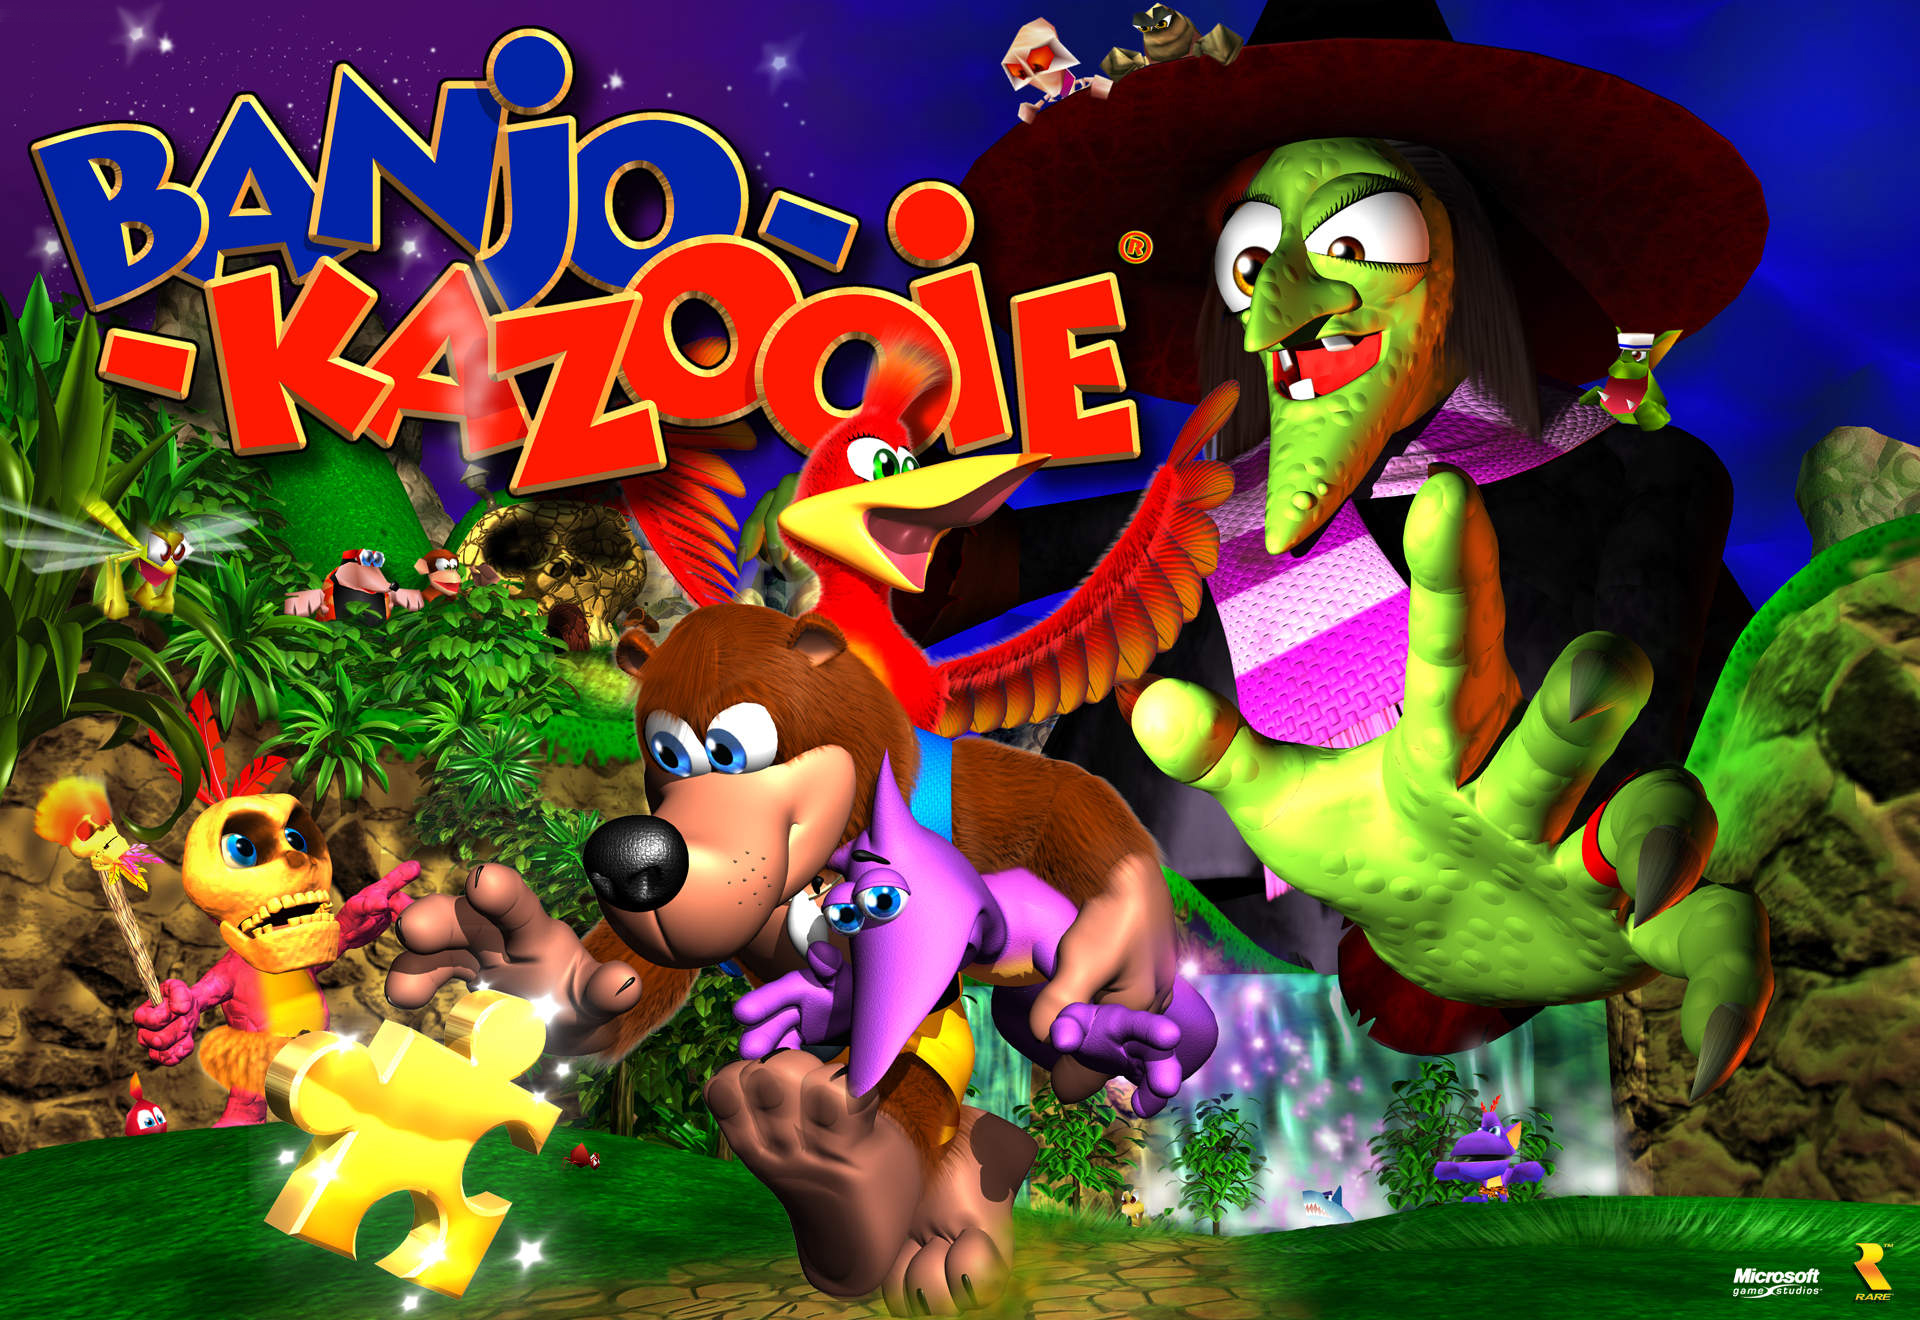 banjo kazooie - photo #17